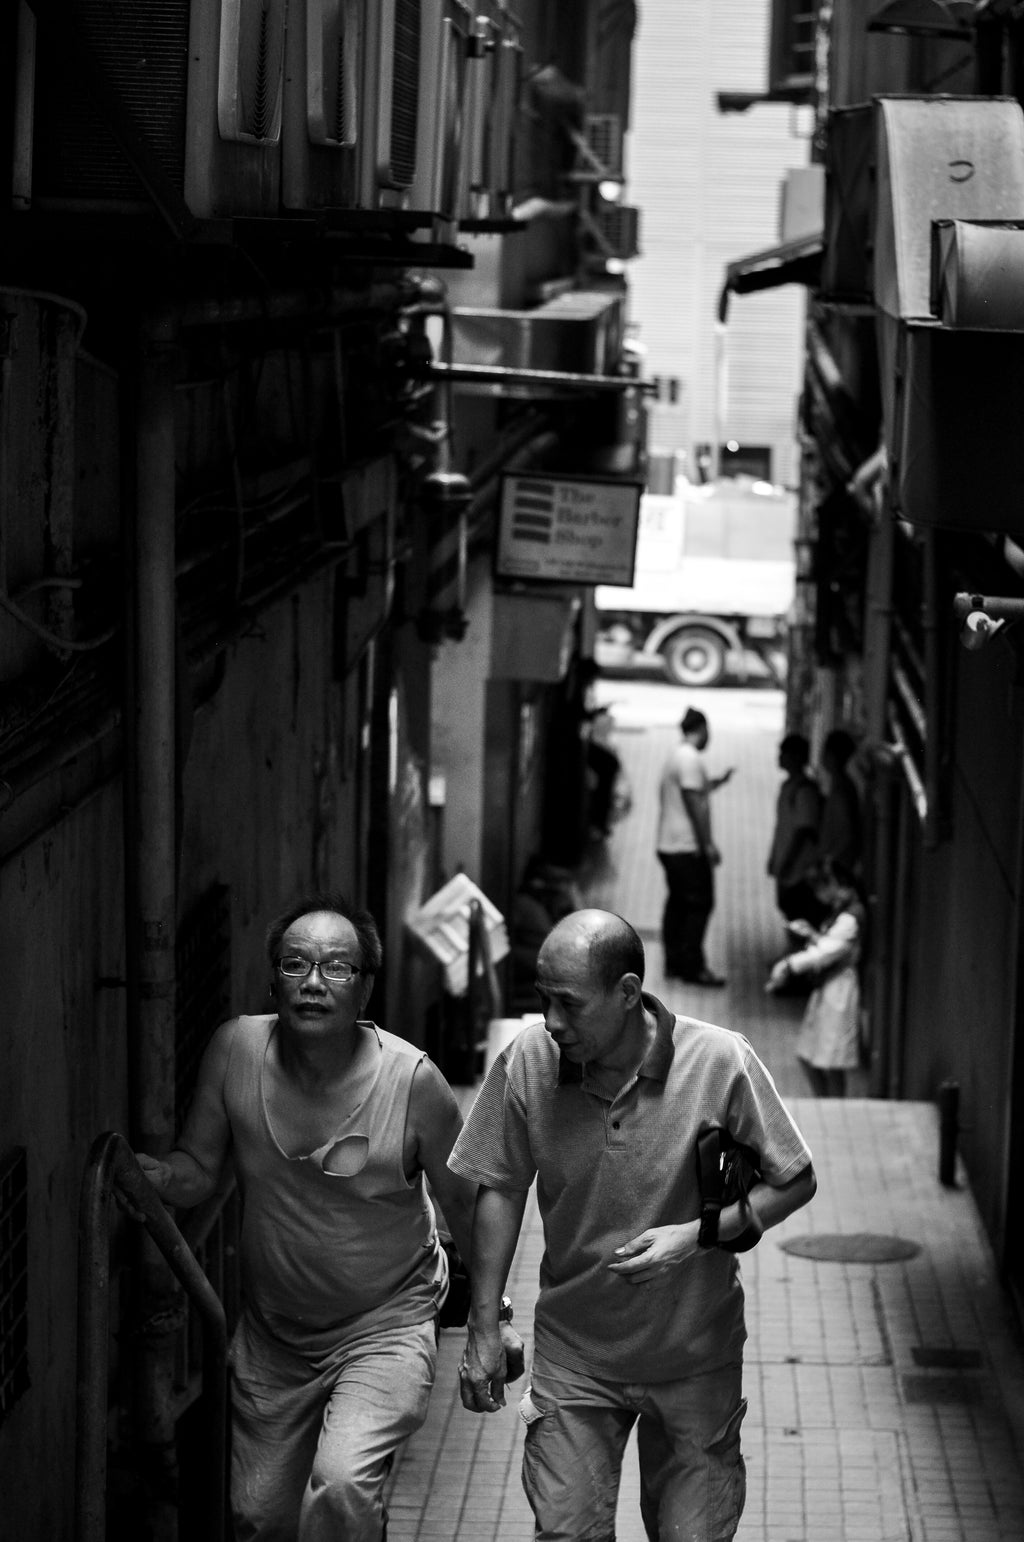 Alleyway In Hong Kong